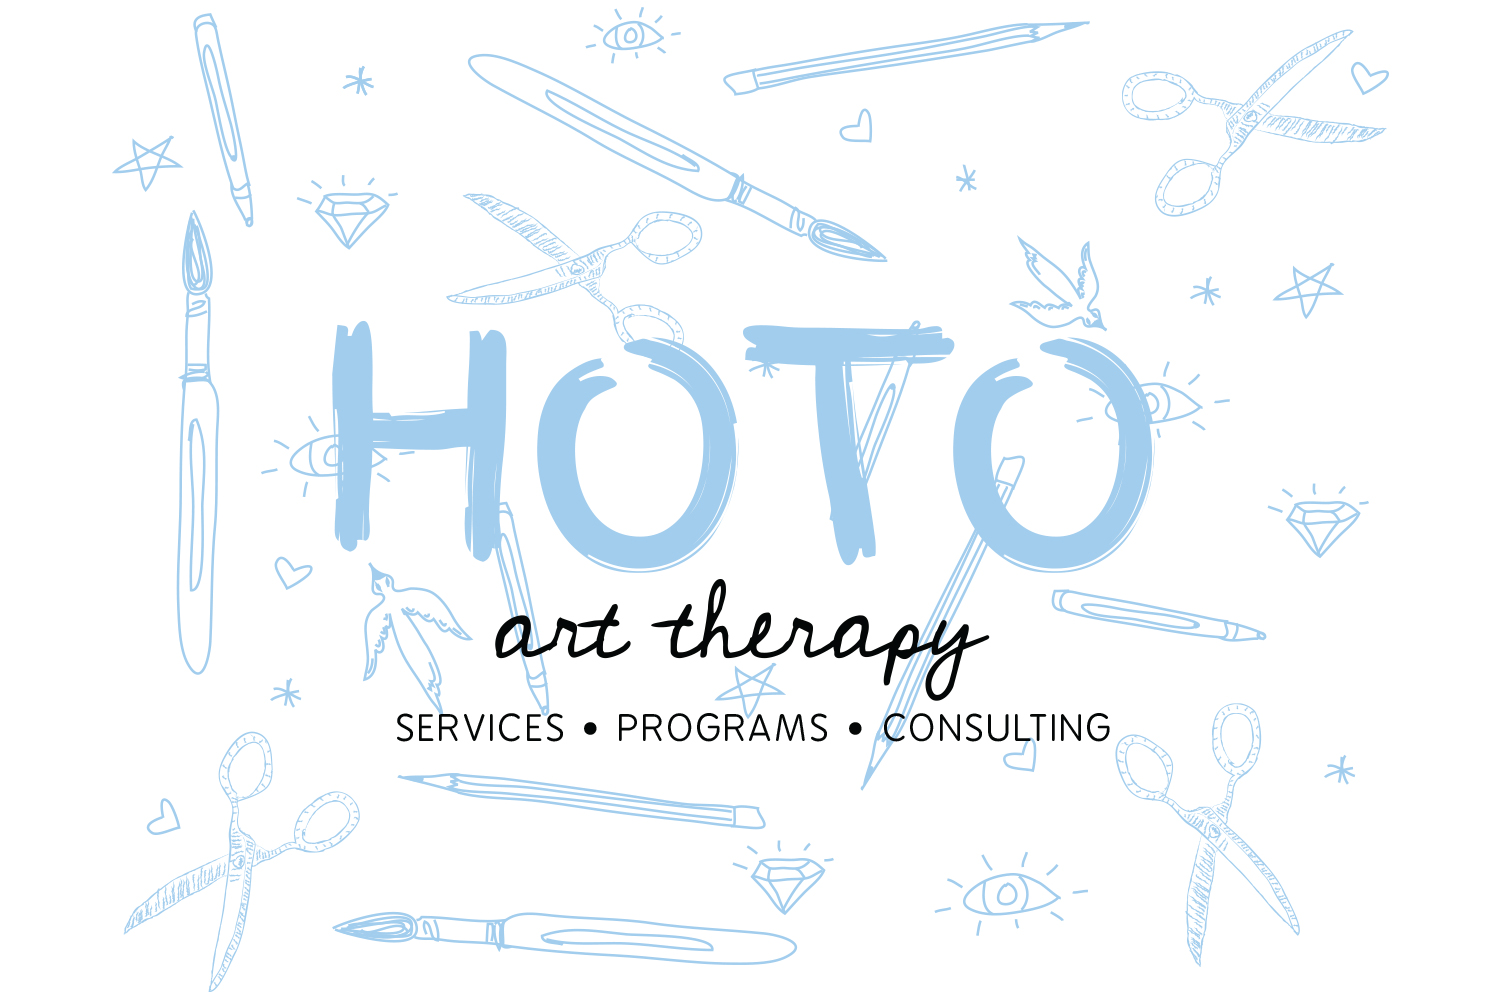 Hoto Art Therapy